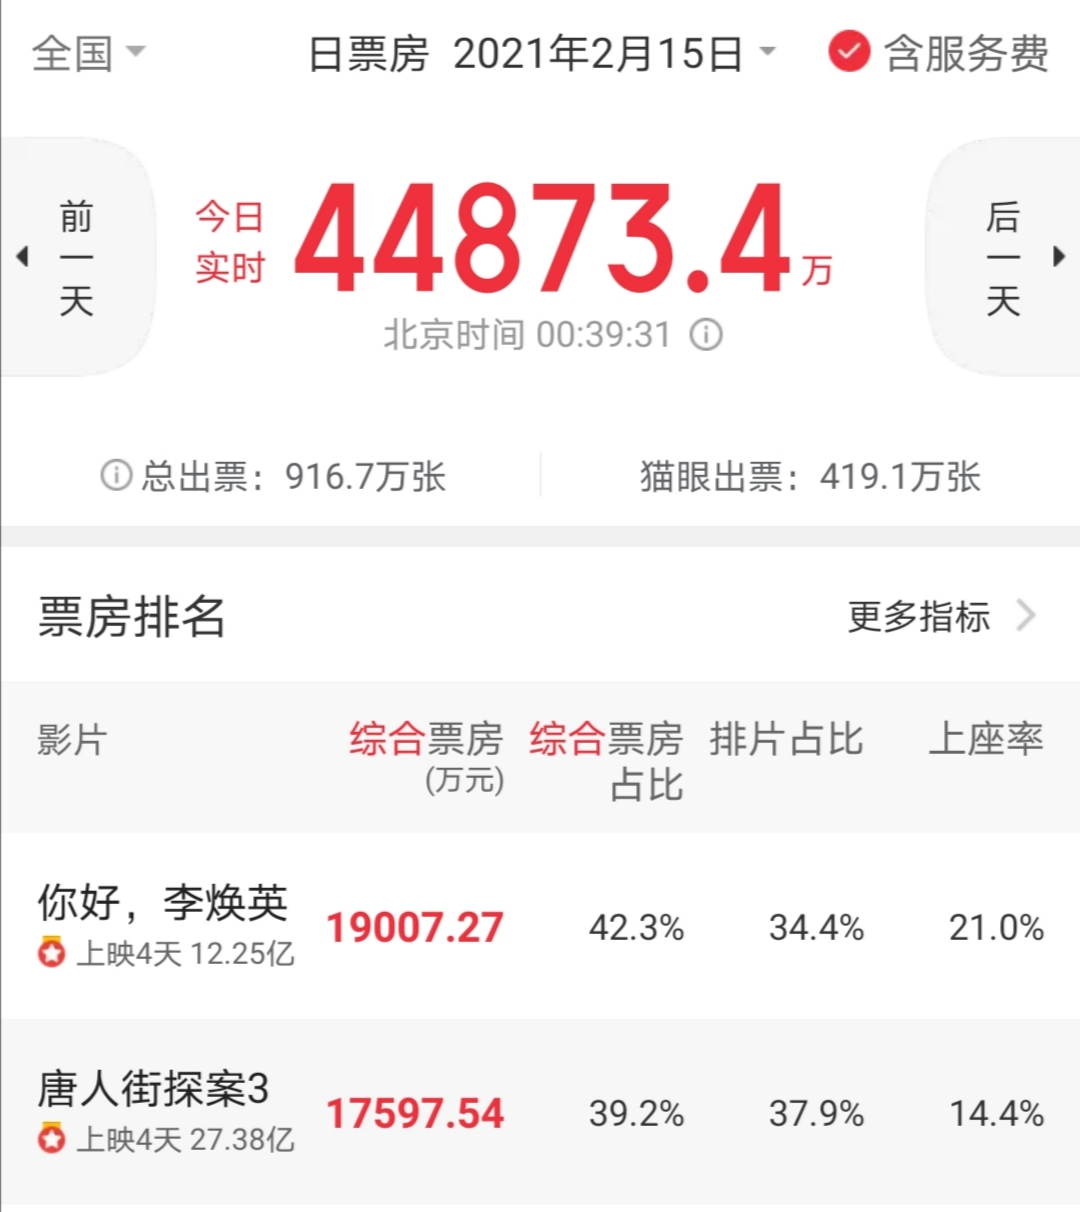 """Jia Ling won! """"Hello Li Huanying"""" counterattacked and overtaken, Tang Tan 3 was driven out of the single-day box office champion"""